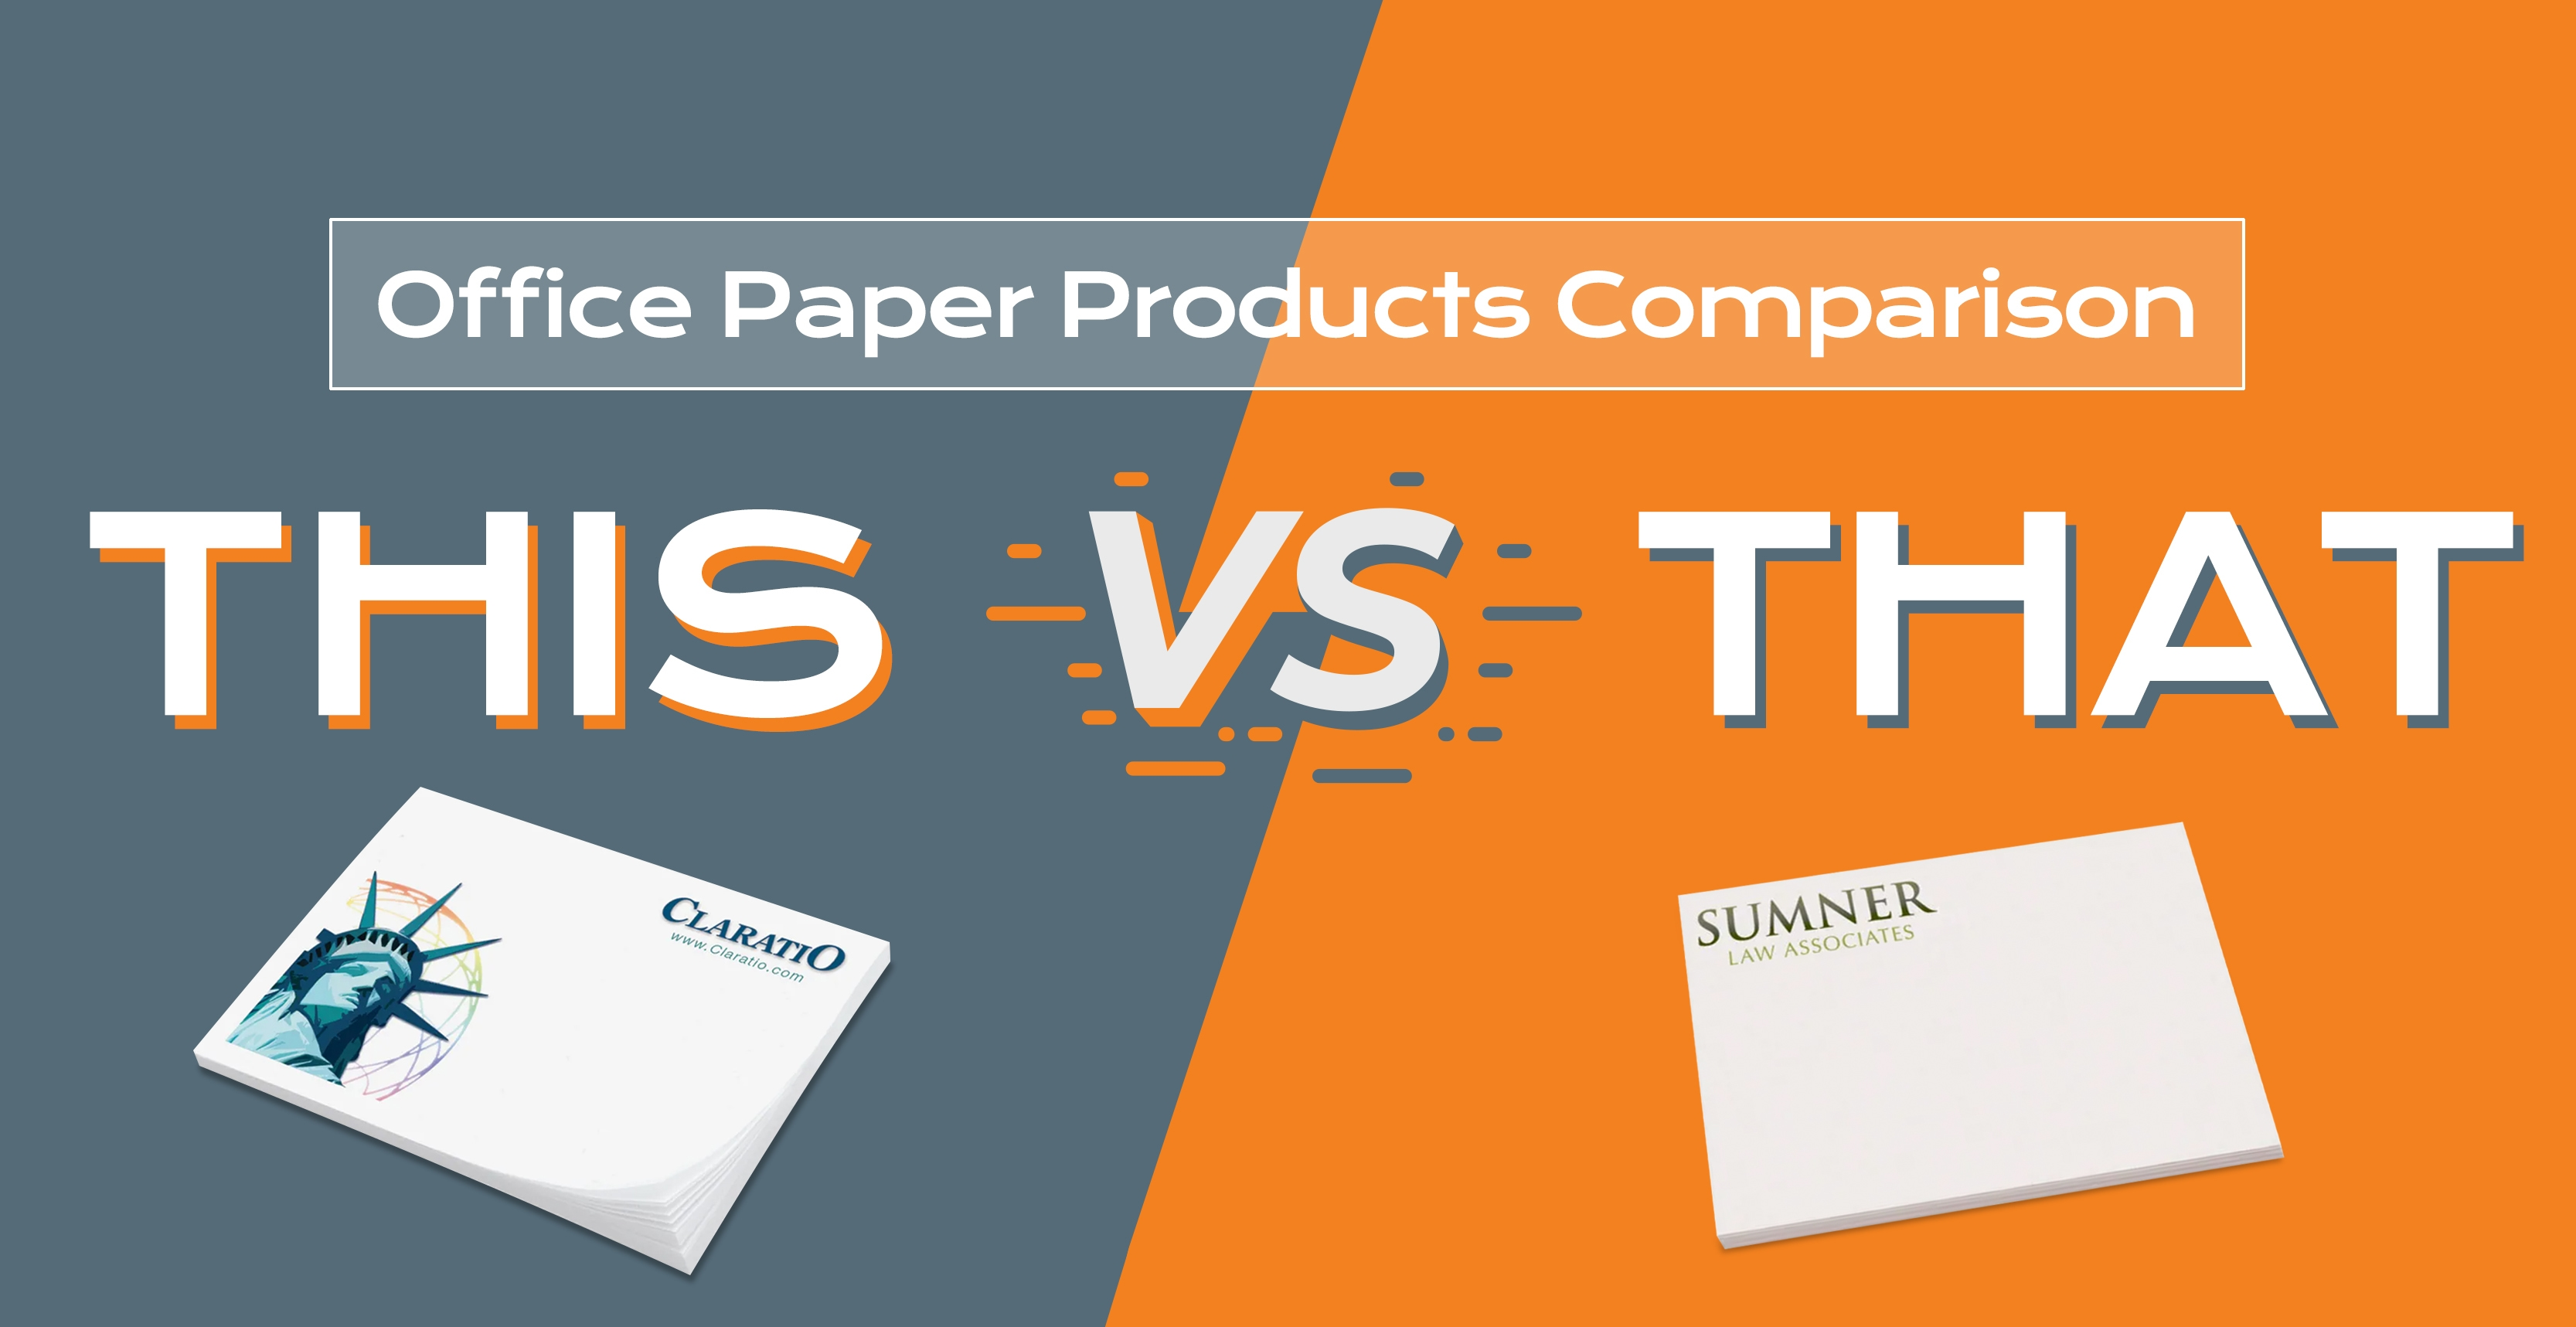 Office paper products comparison